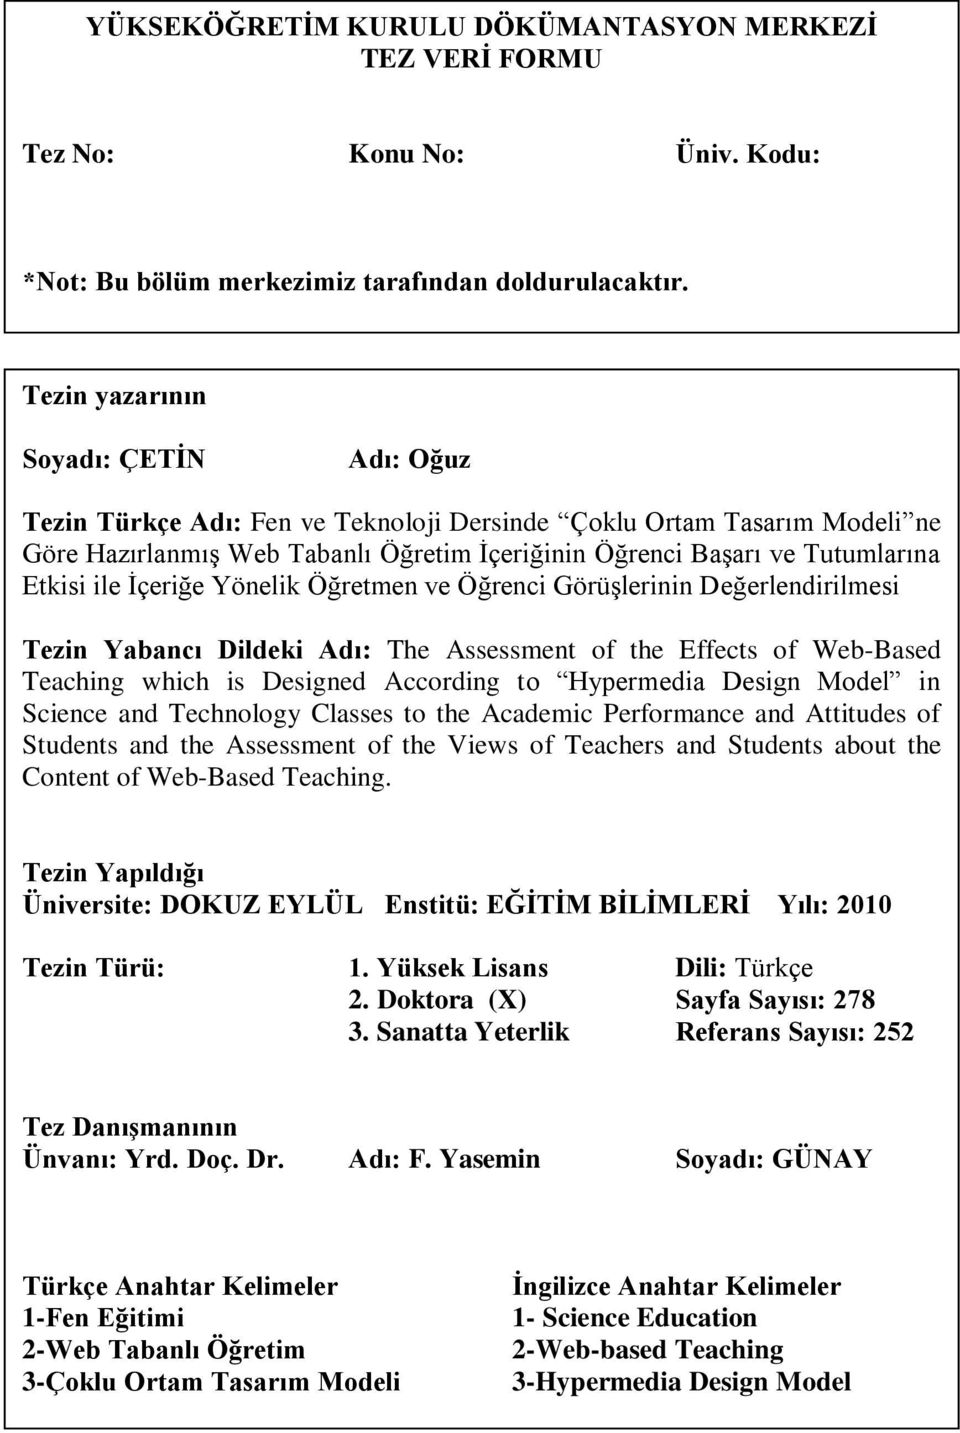 ile İçeriğe Yönelik Öğretmen ve Öğrenci Görüşlerinin Değerlendirilmesi Tezin Yabancı Dildeki Adı: The Assessment of the Effects of Web-Based Teaching which is Designed According to Hypermedia Design